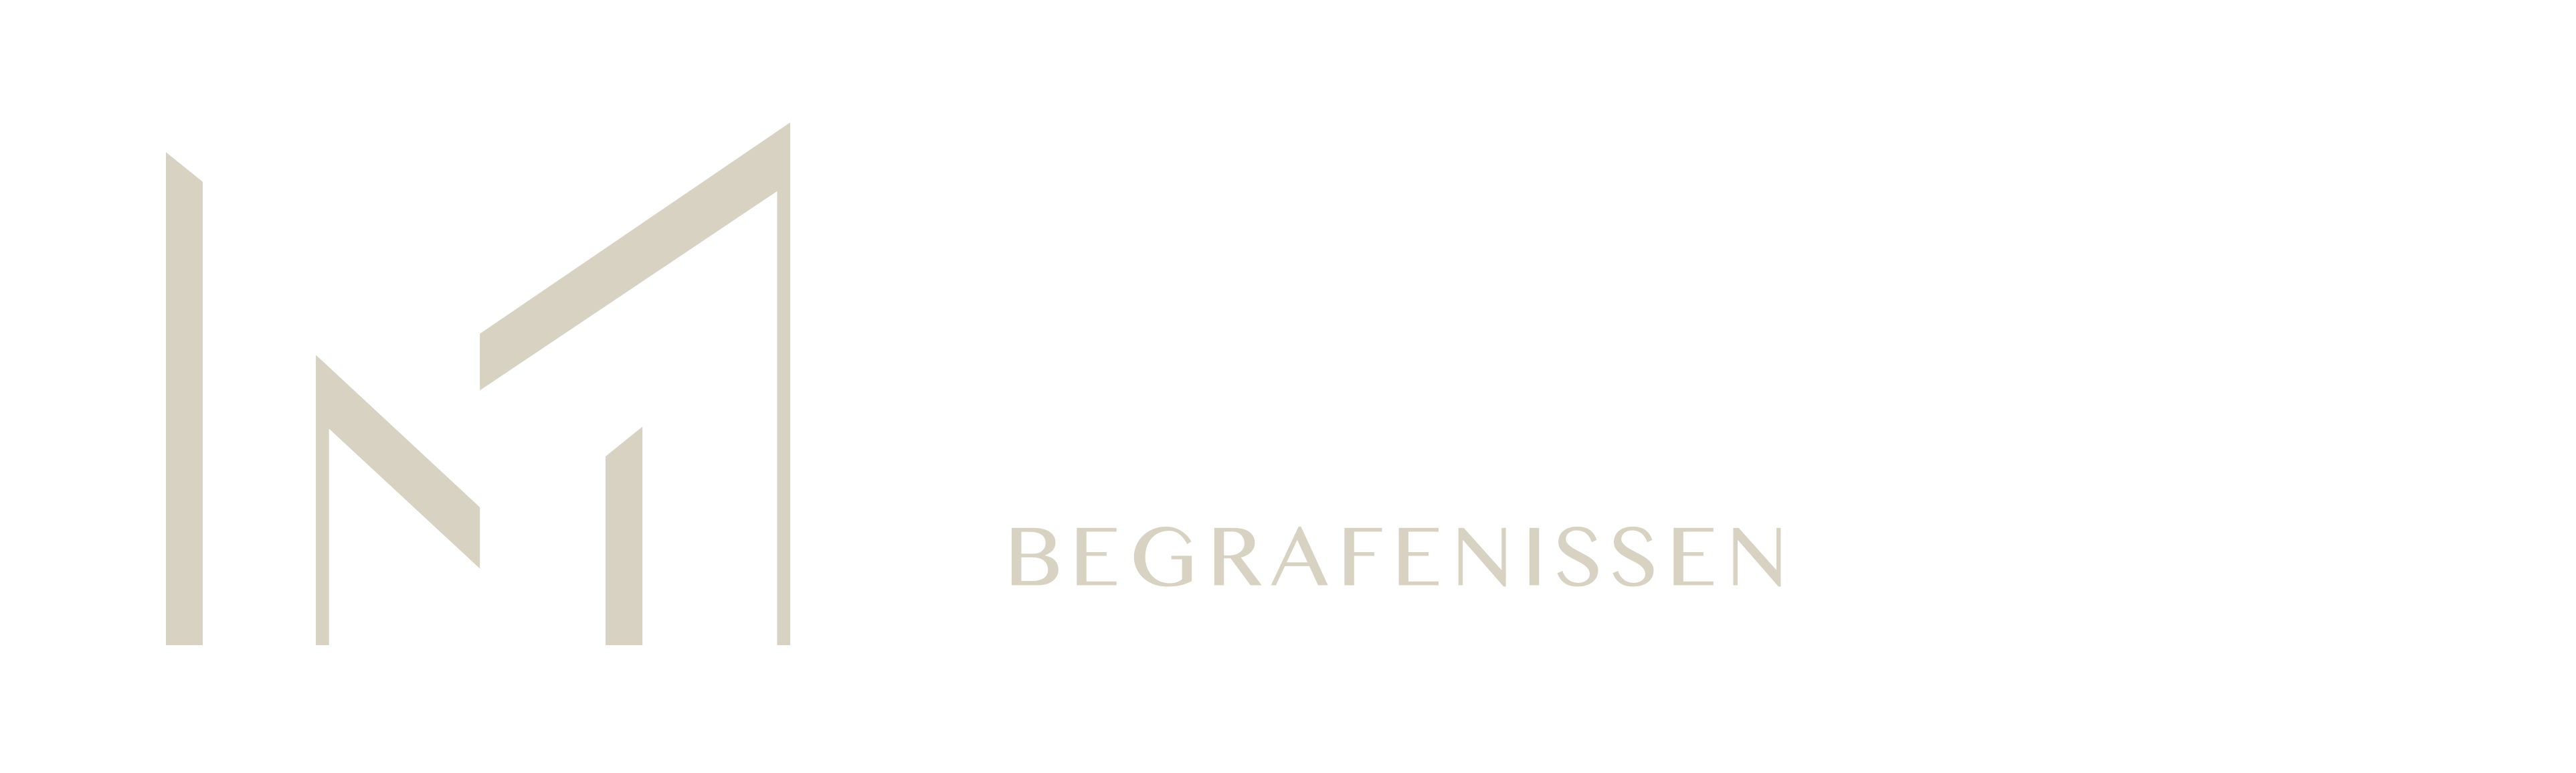 Logo - Messiaen